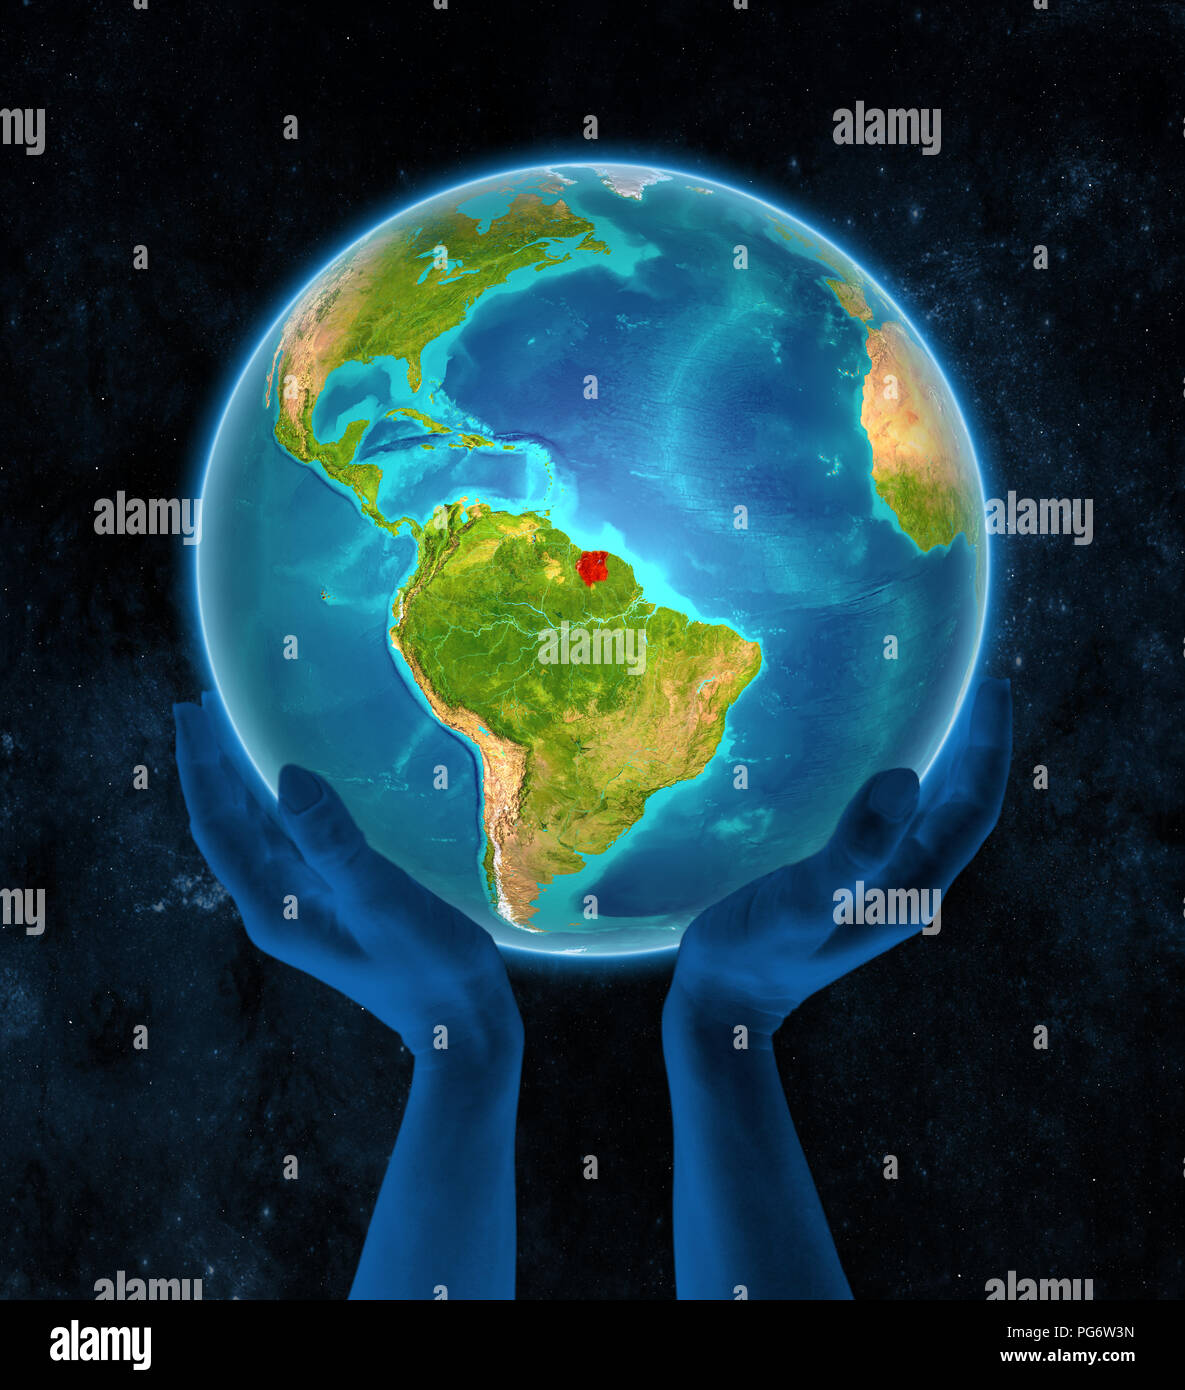 Suriname in red on globe held in hands in space. 3D illustration. - Stock Image